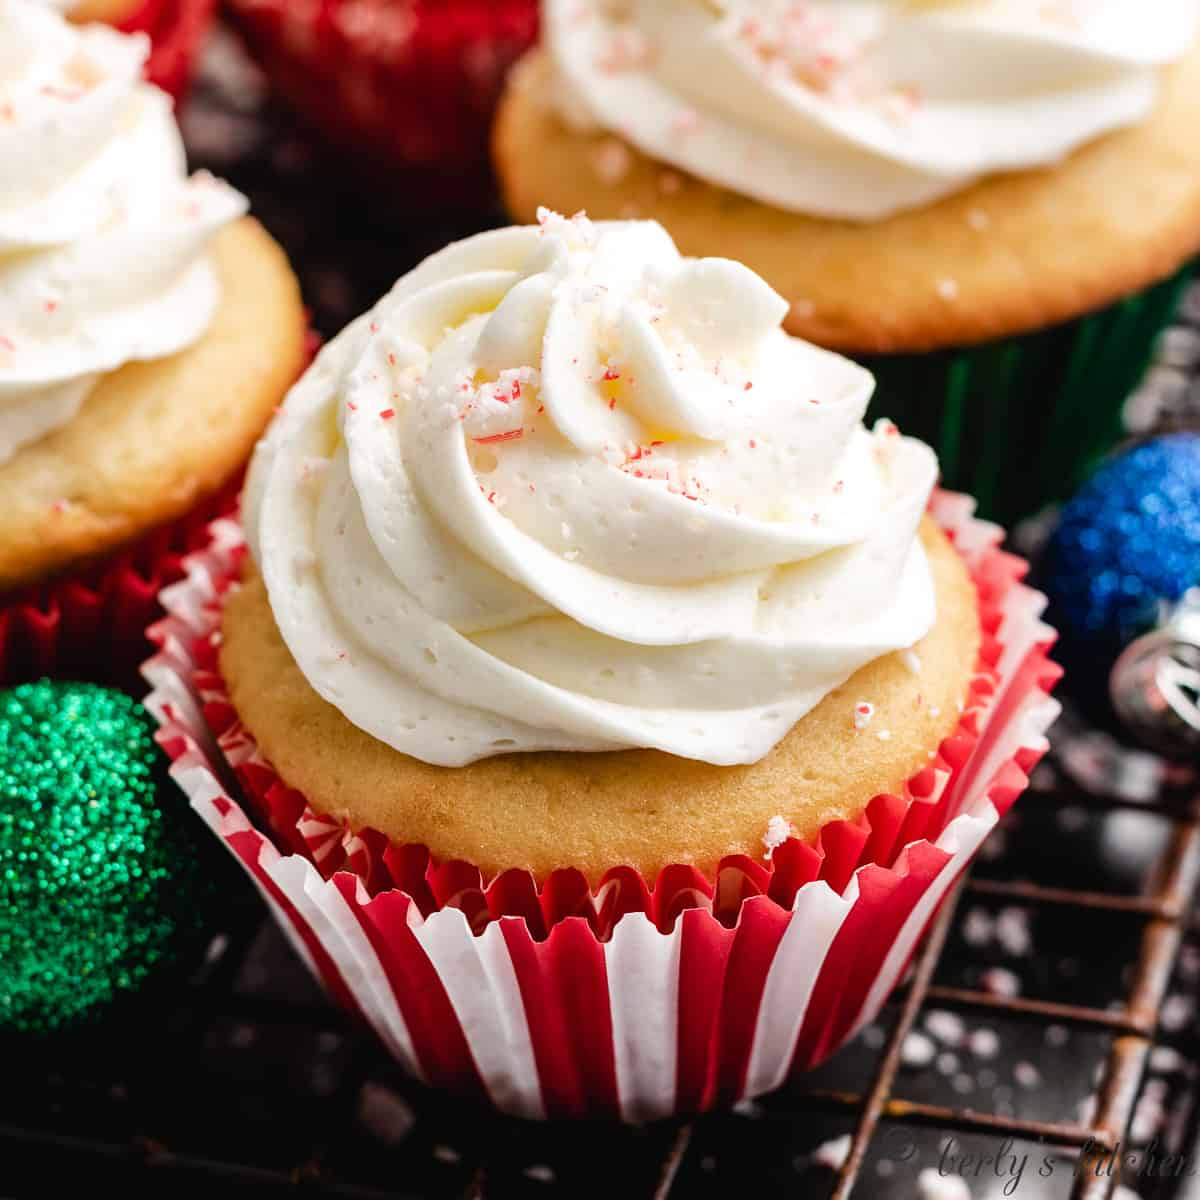 A cooled cupcake with peppermint frosting.